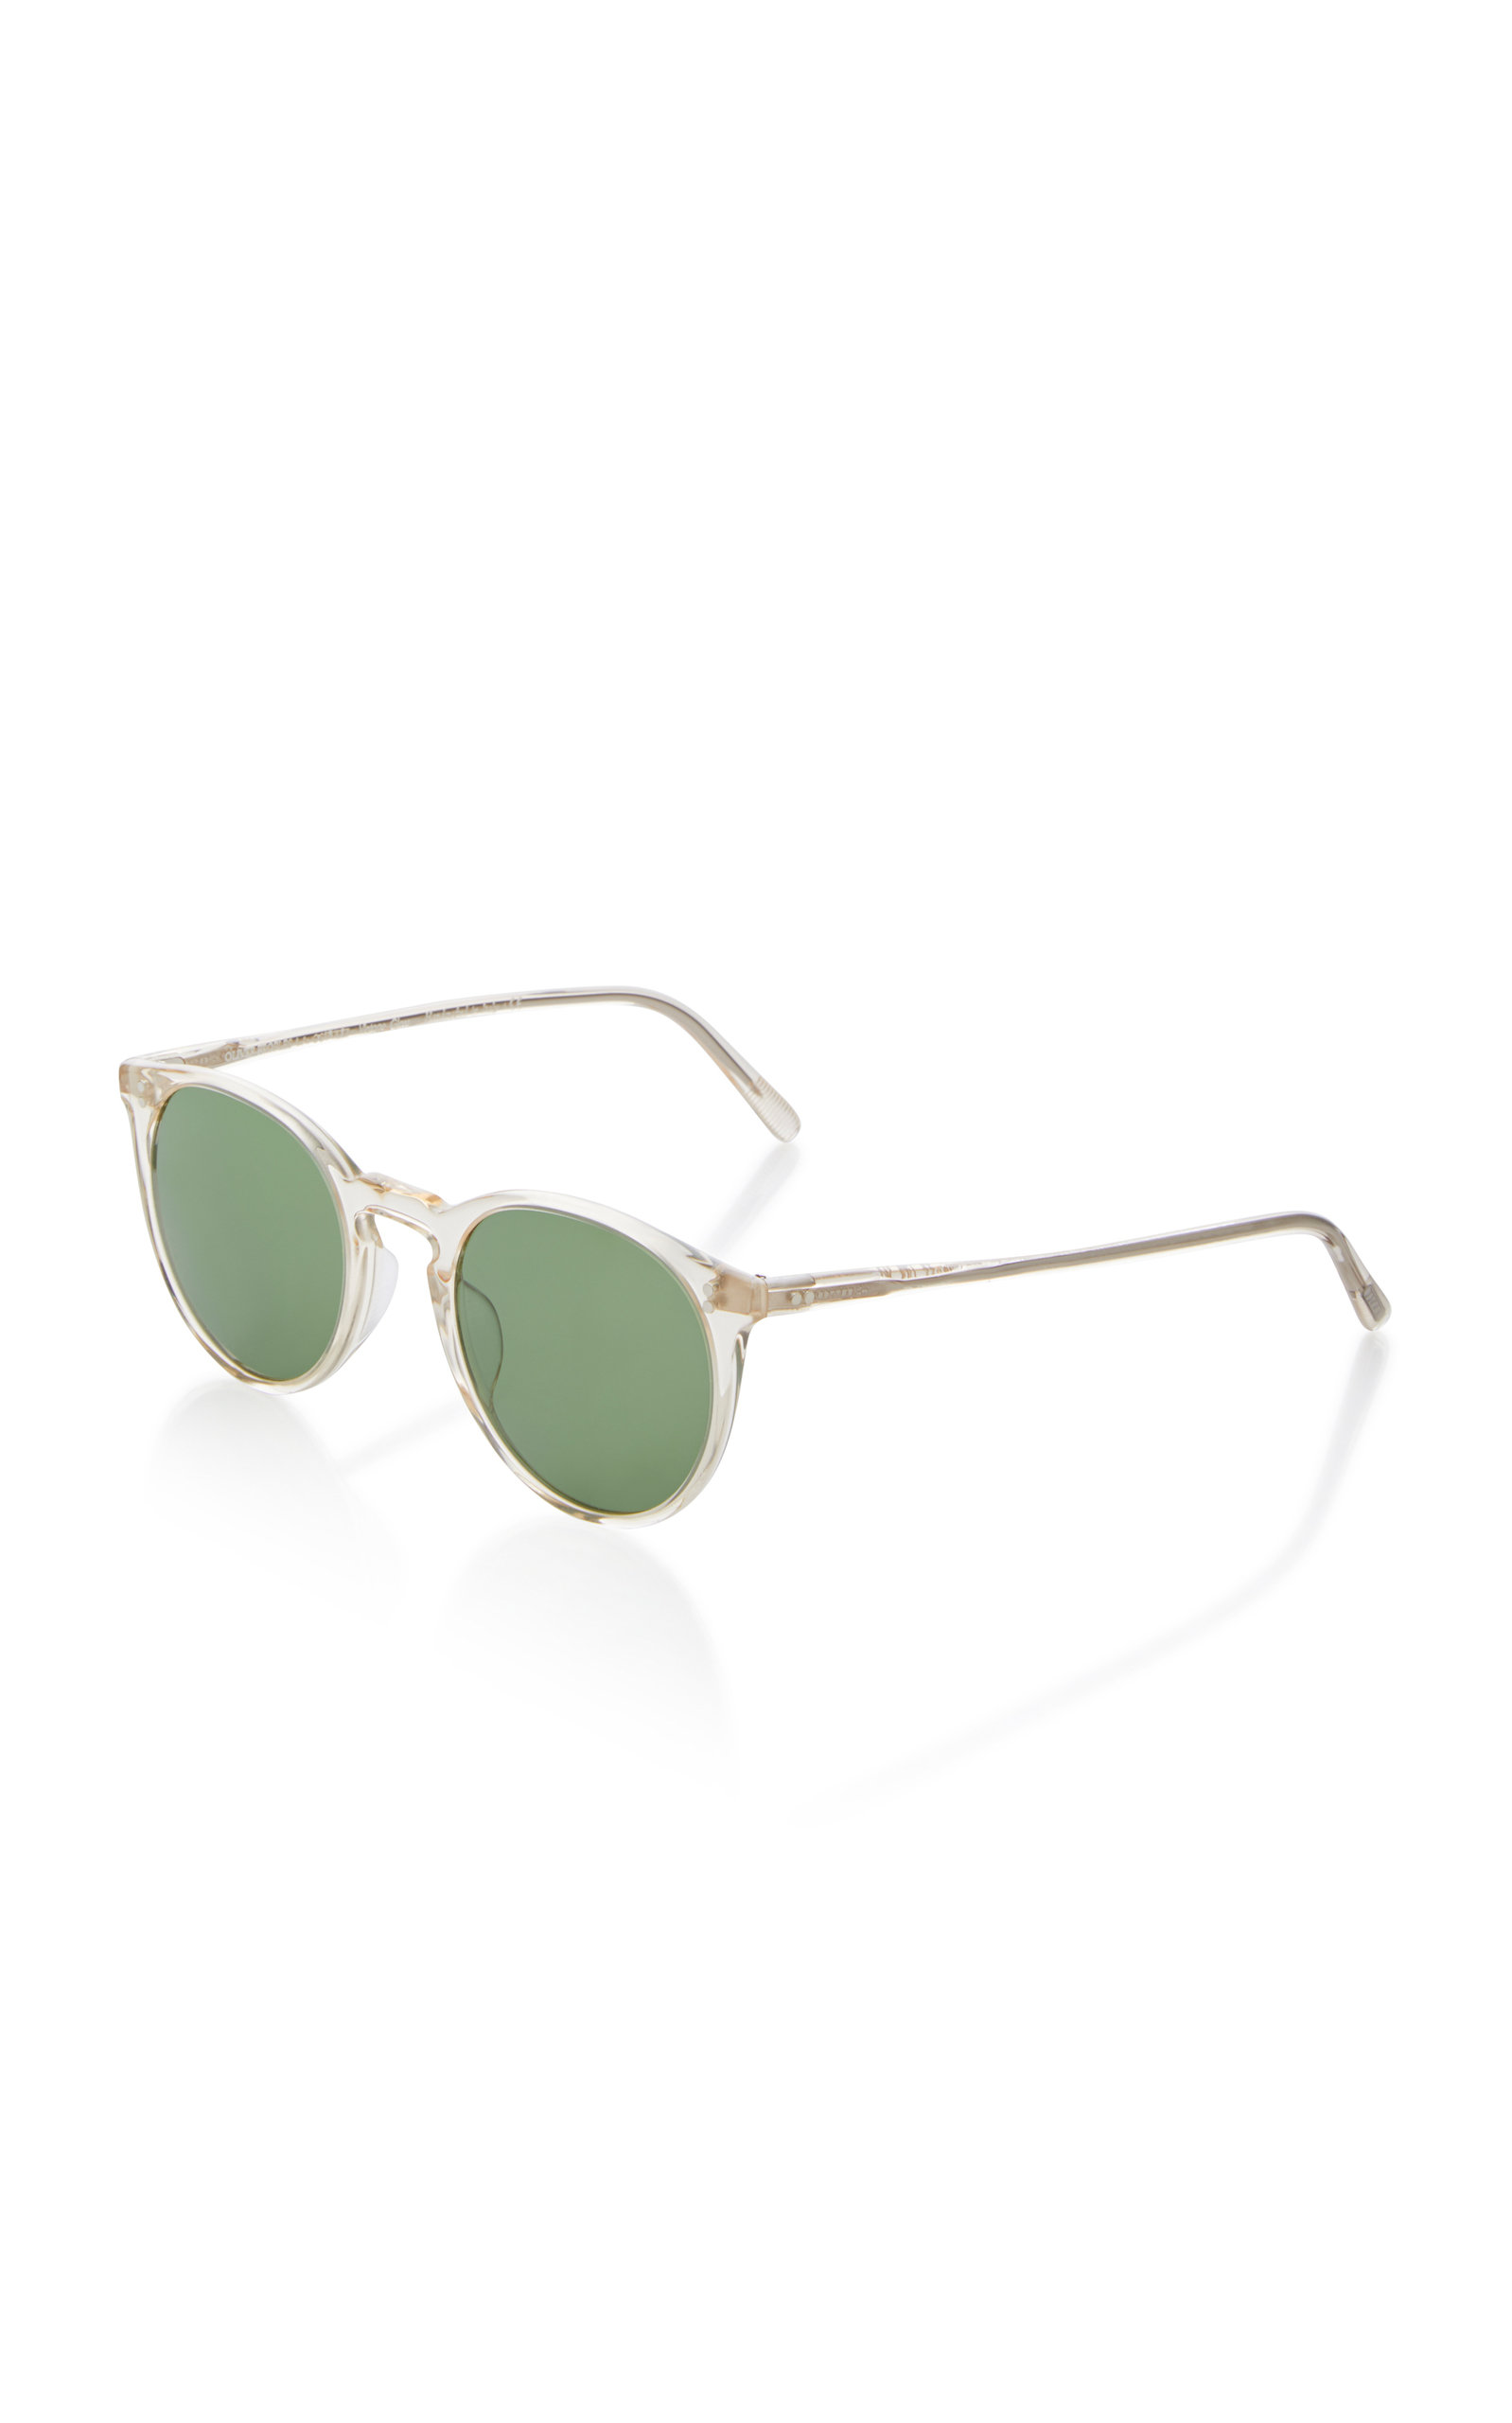 a9fde6071d Oliver Peoples O Malley Round Sunglasses In White